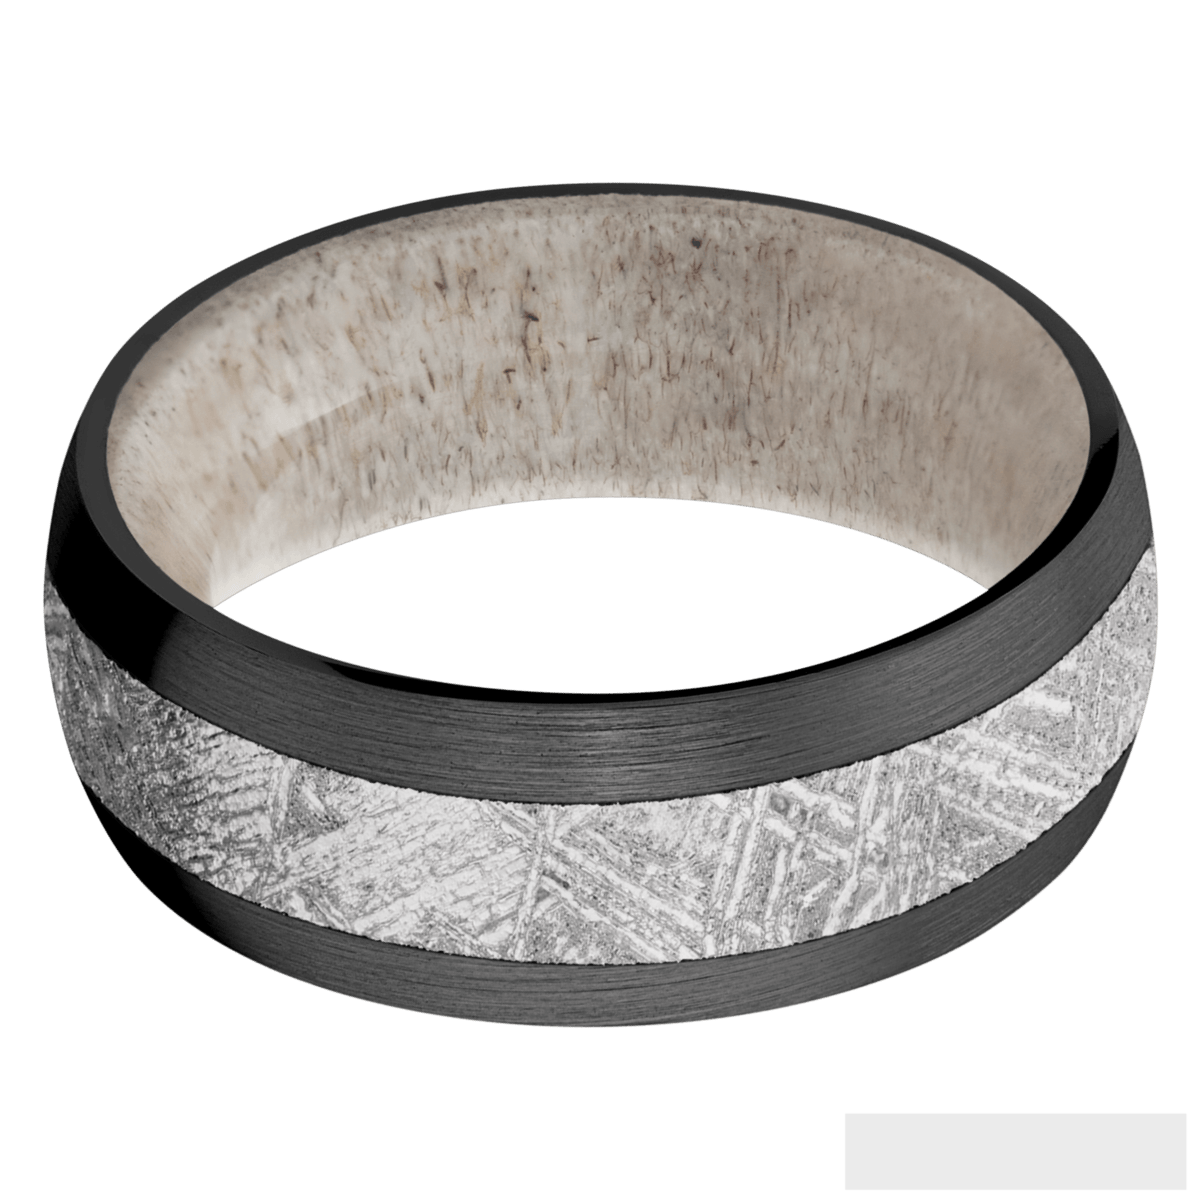 Men's Black Zirconium Meteorite Ring with Deer Antler Sleeve